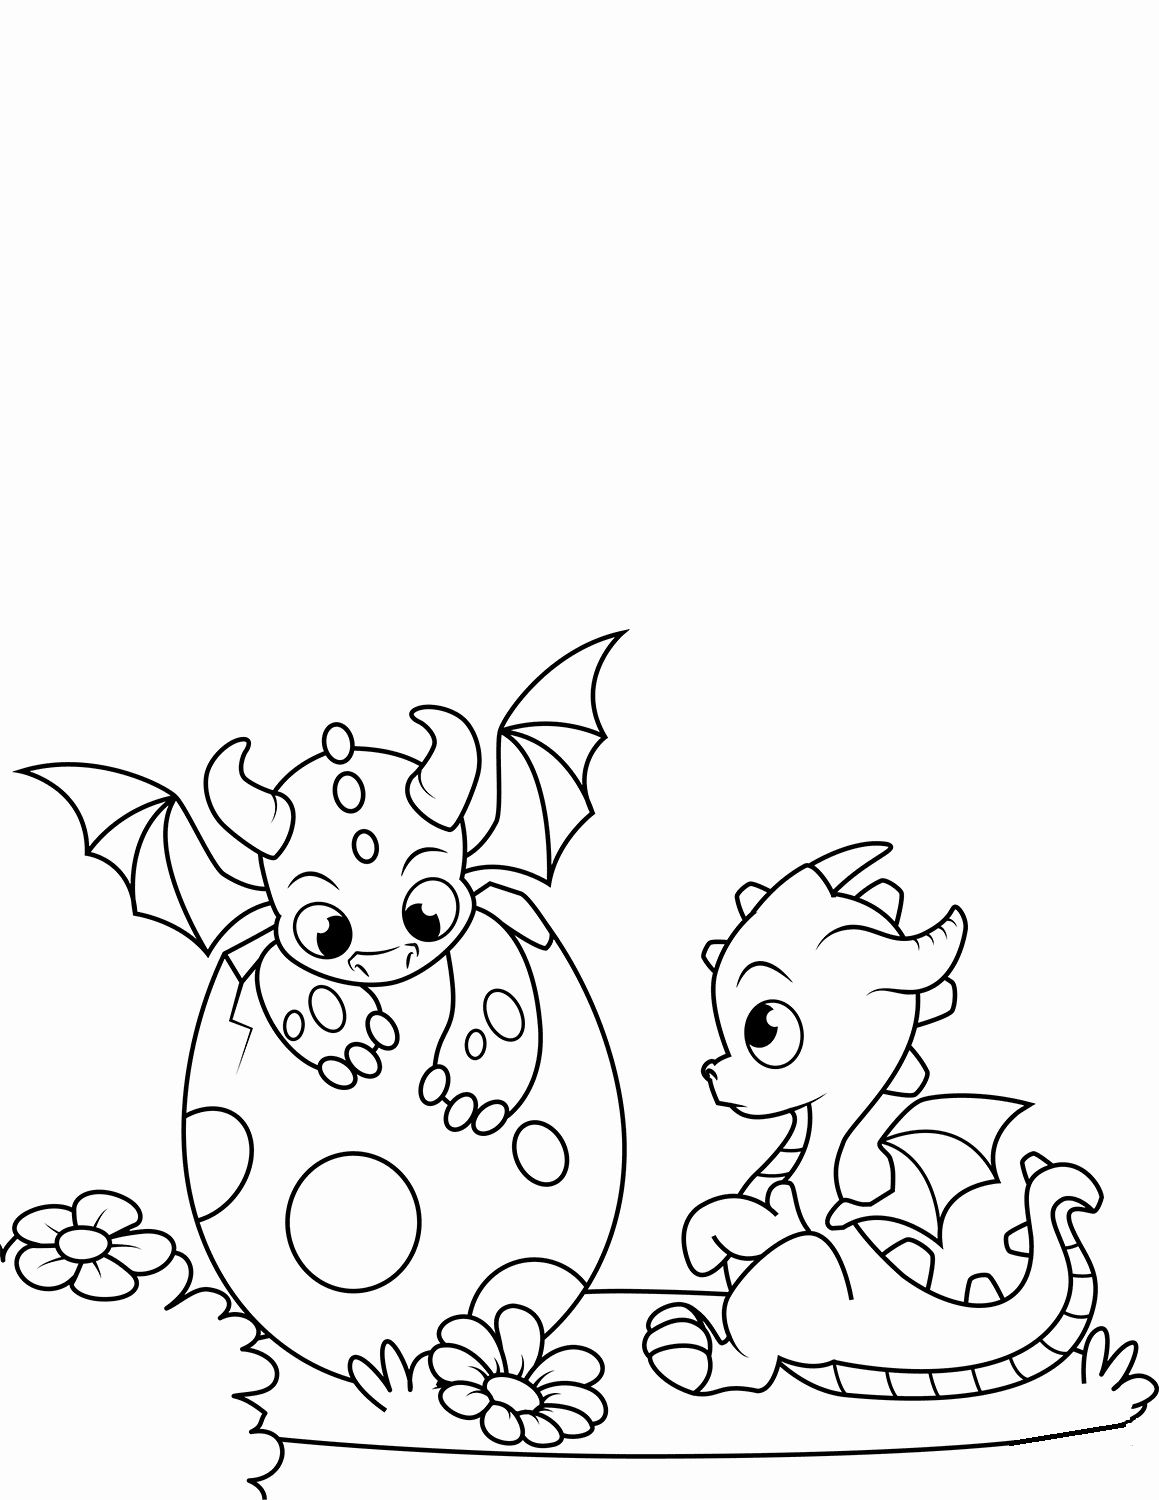 Cartoons Coloring Pages To Print New 35 Free Printable Dragon Coloring Pages In 2020 Bunny Coloring Pages Dragon Coloring Page Cartoon Coloring Pages